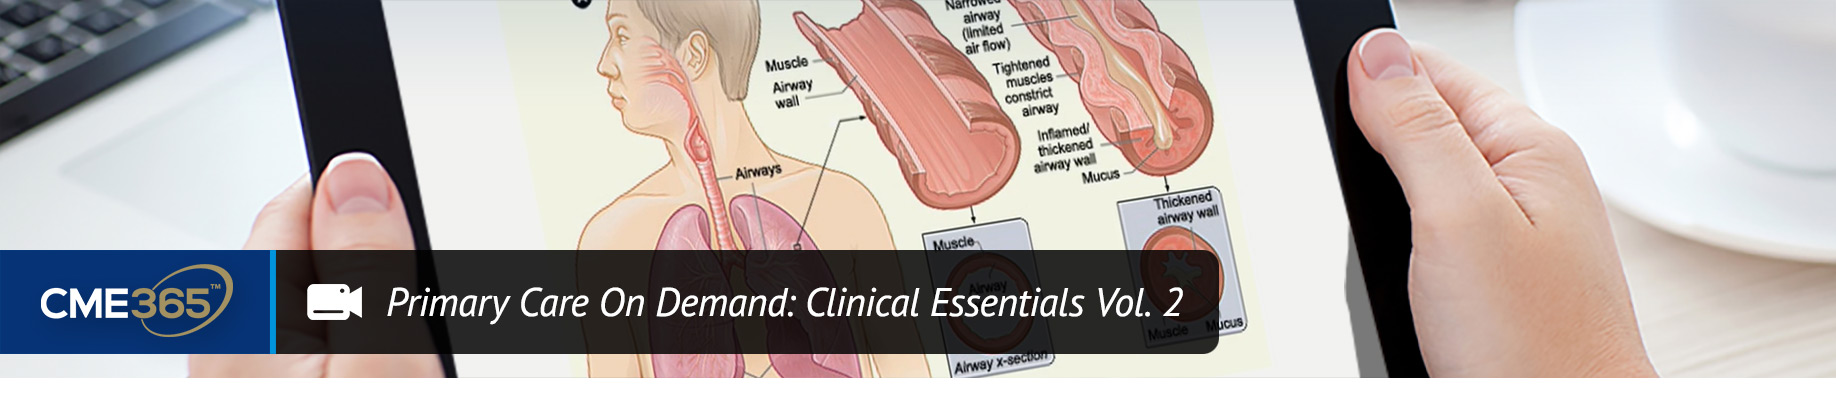 Primary Care On Demand: Clinical Essentials Vol. 2